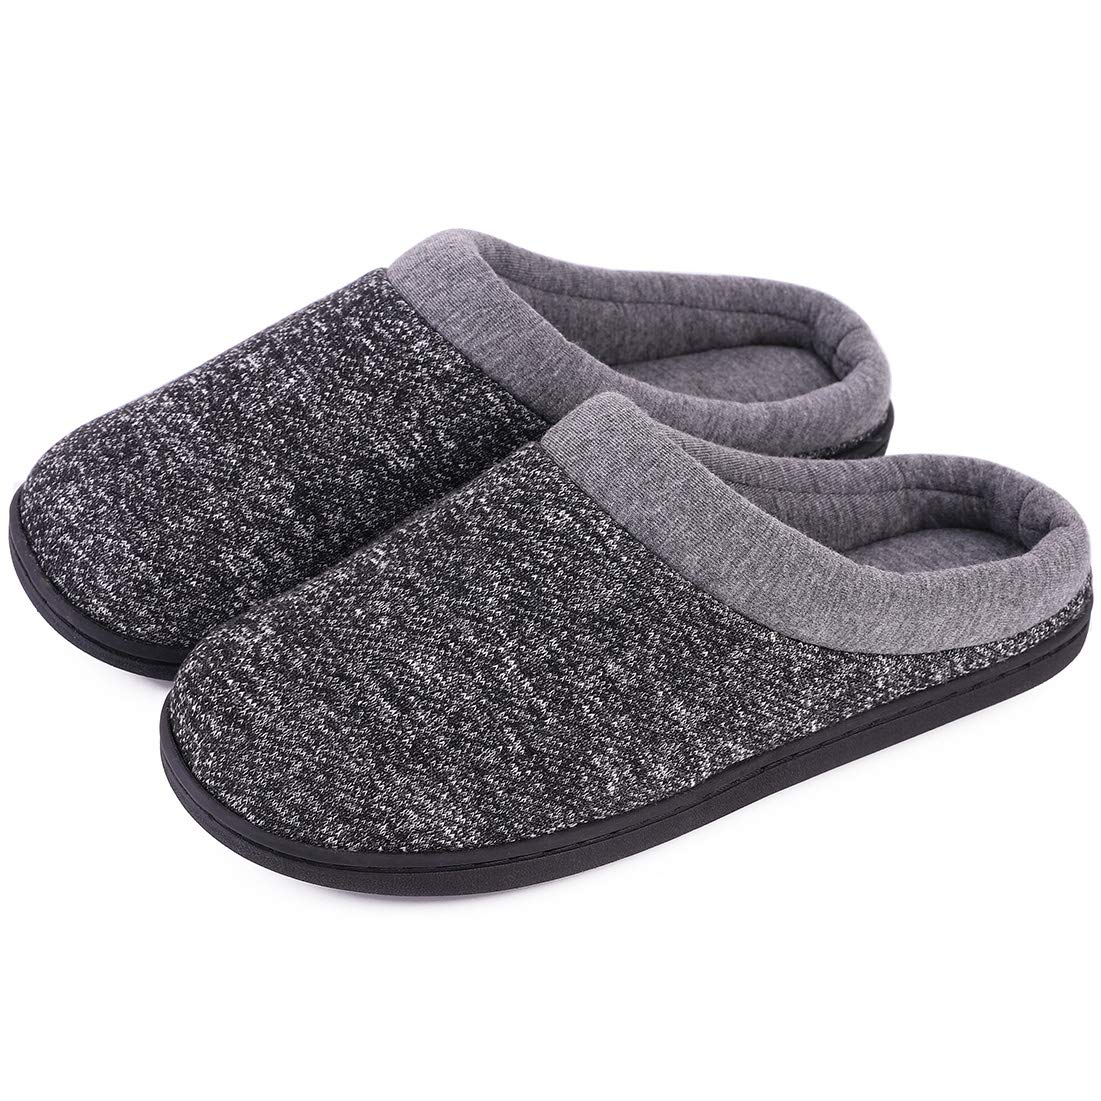 Women's Comfort Slip On Memory Foam Slippers French Terry Lining House Slippers w/Anti Slip Sole (7-8 M US, Space Black)